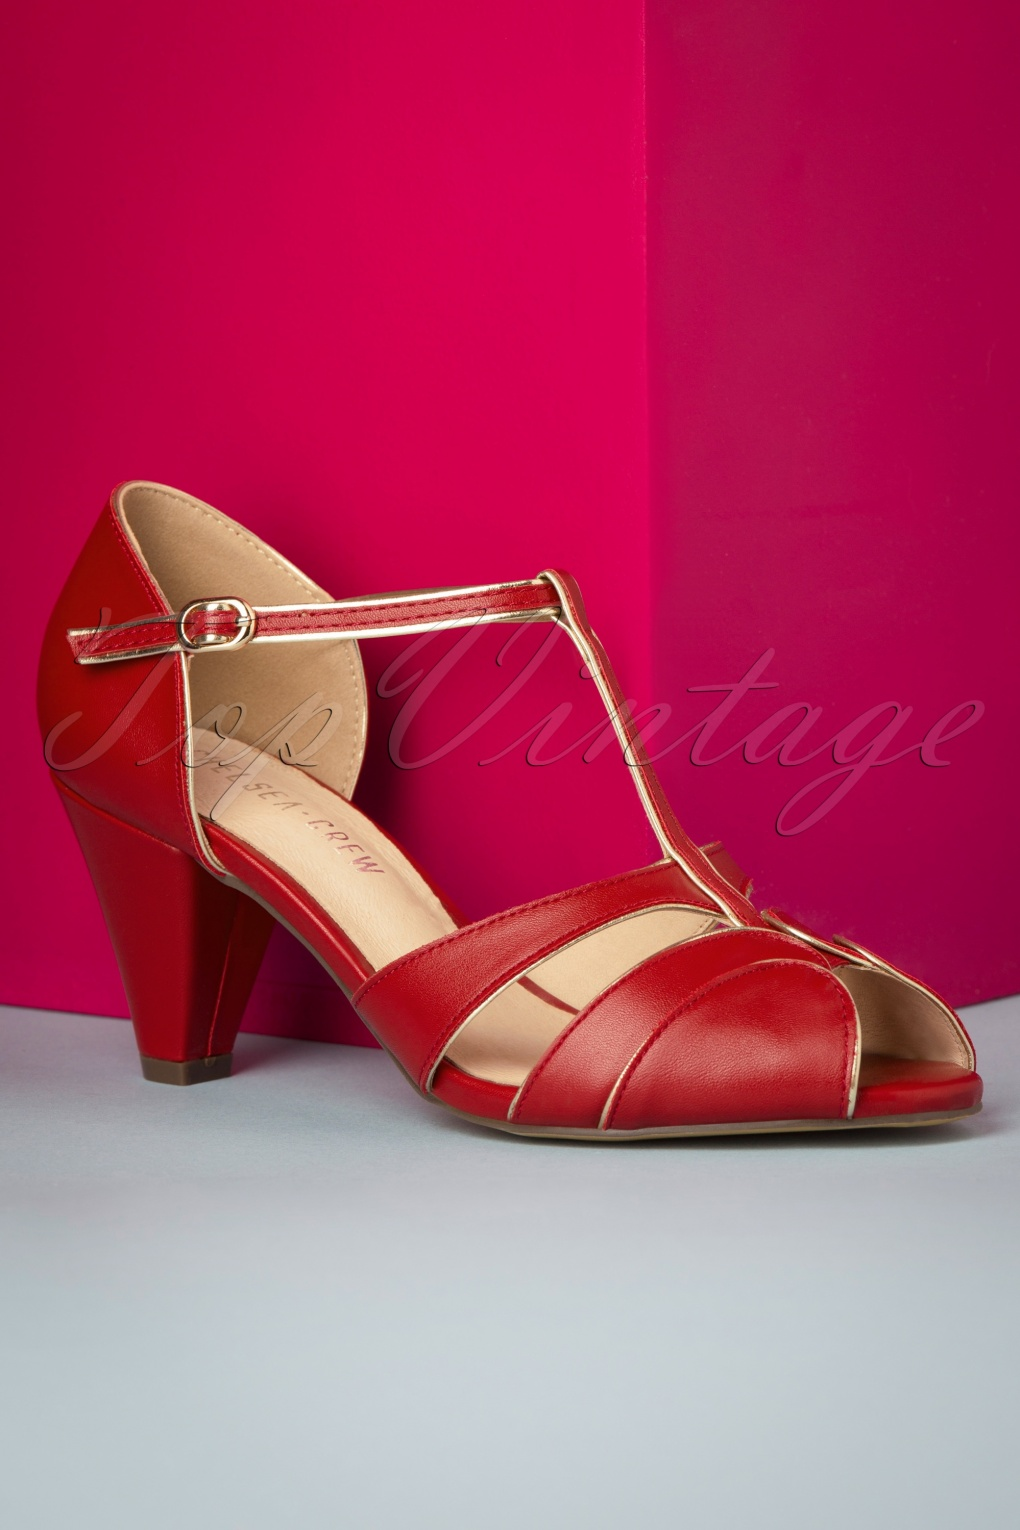 1940s Style Shoes, 40s Shoes, Heels, Boots 40s Penelope Peeptoe Pumps in Red £24.95 AT vintagedancer.com